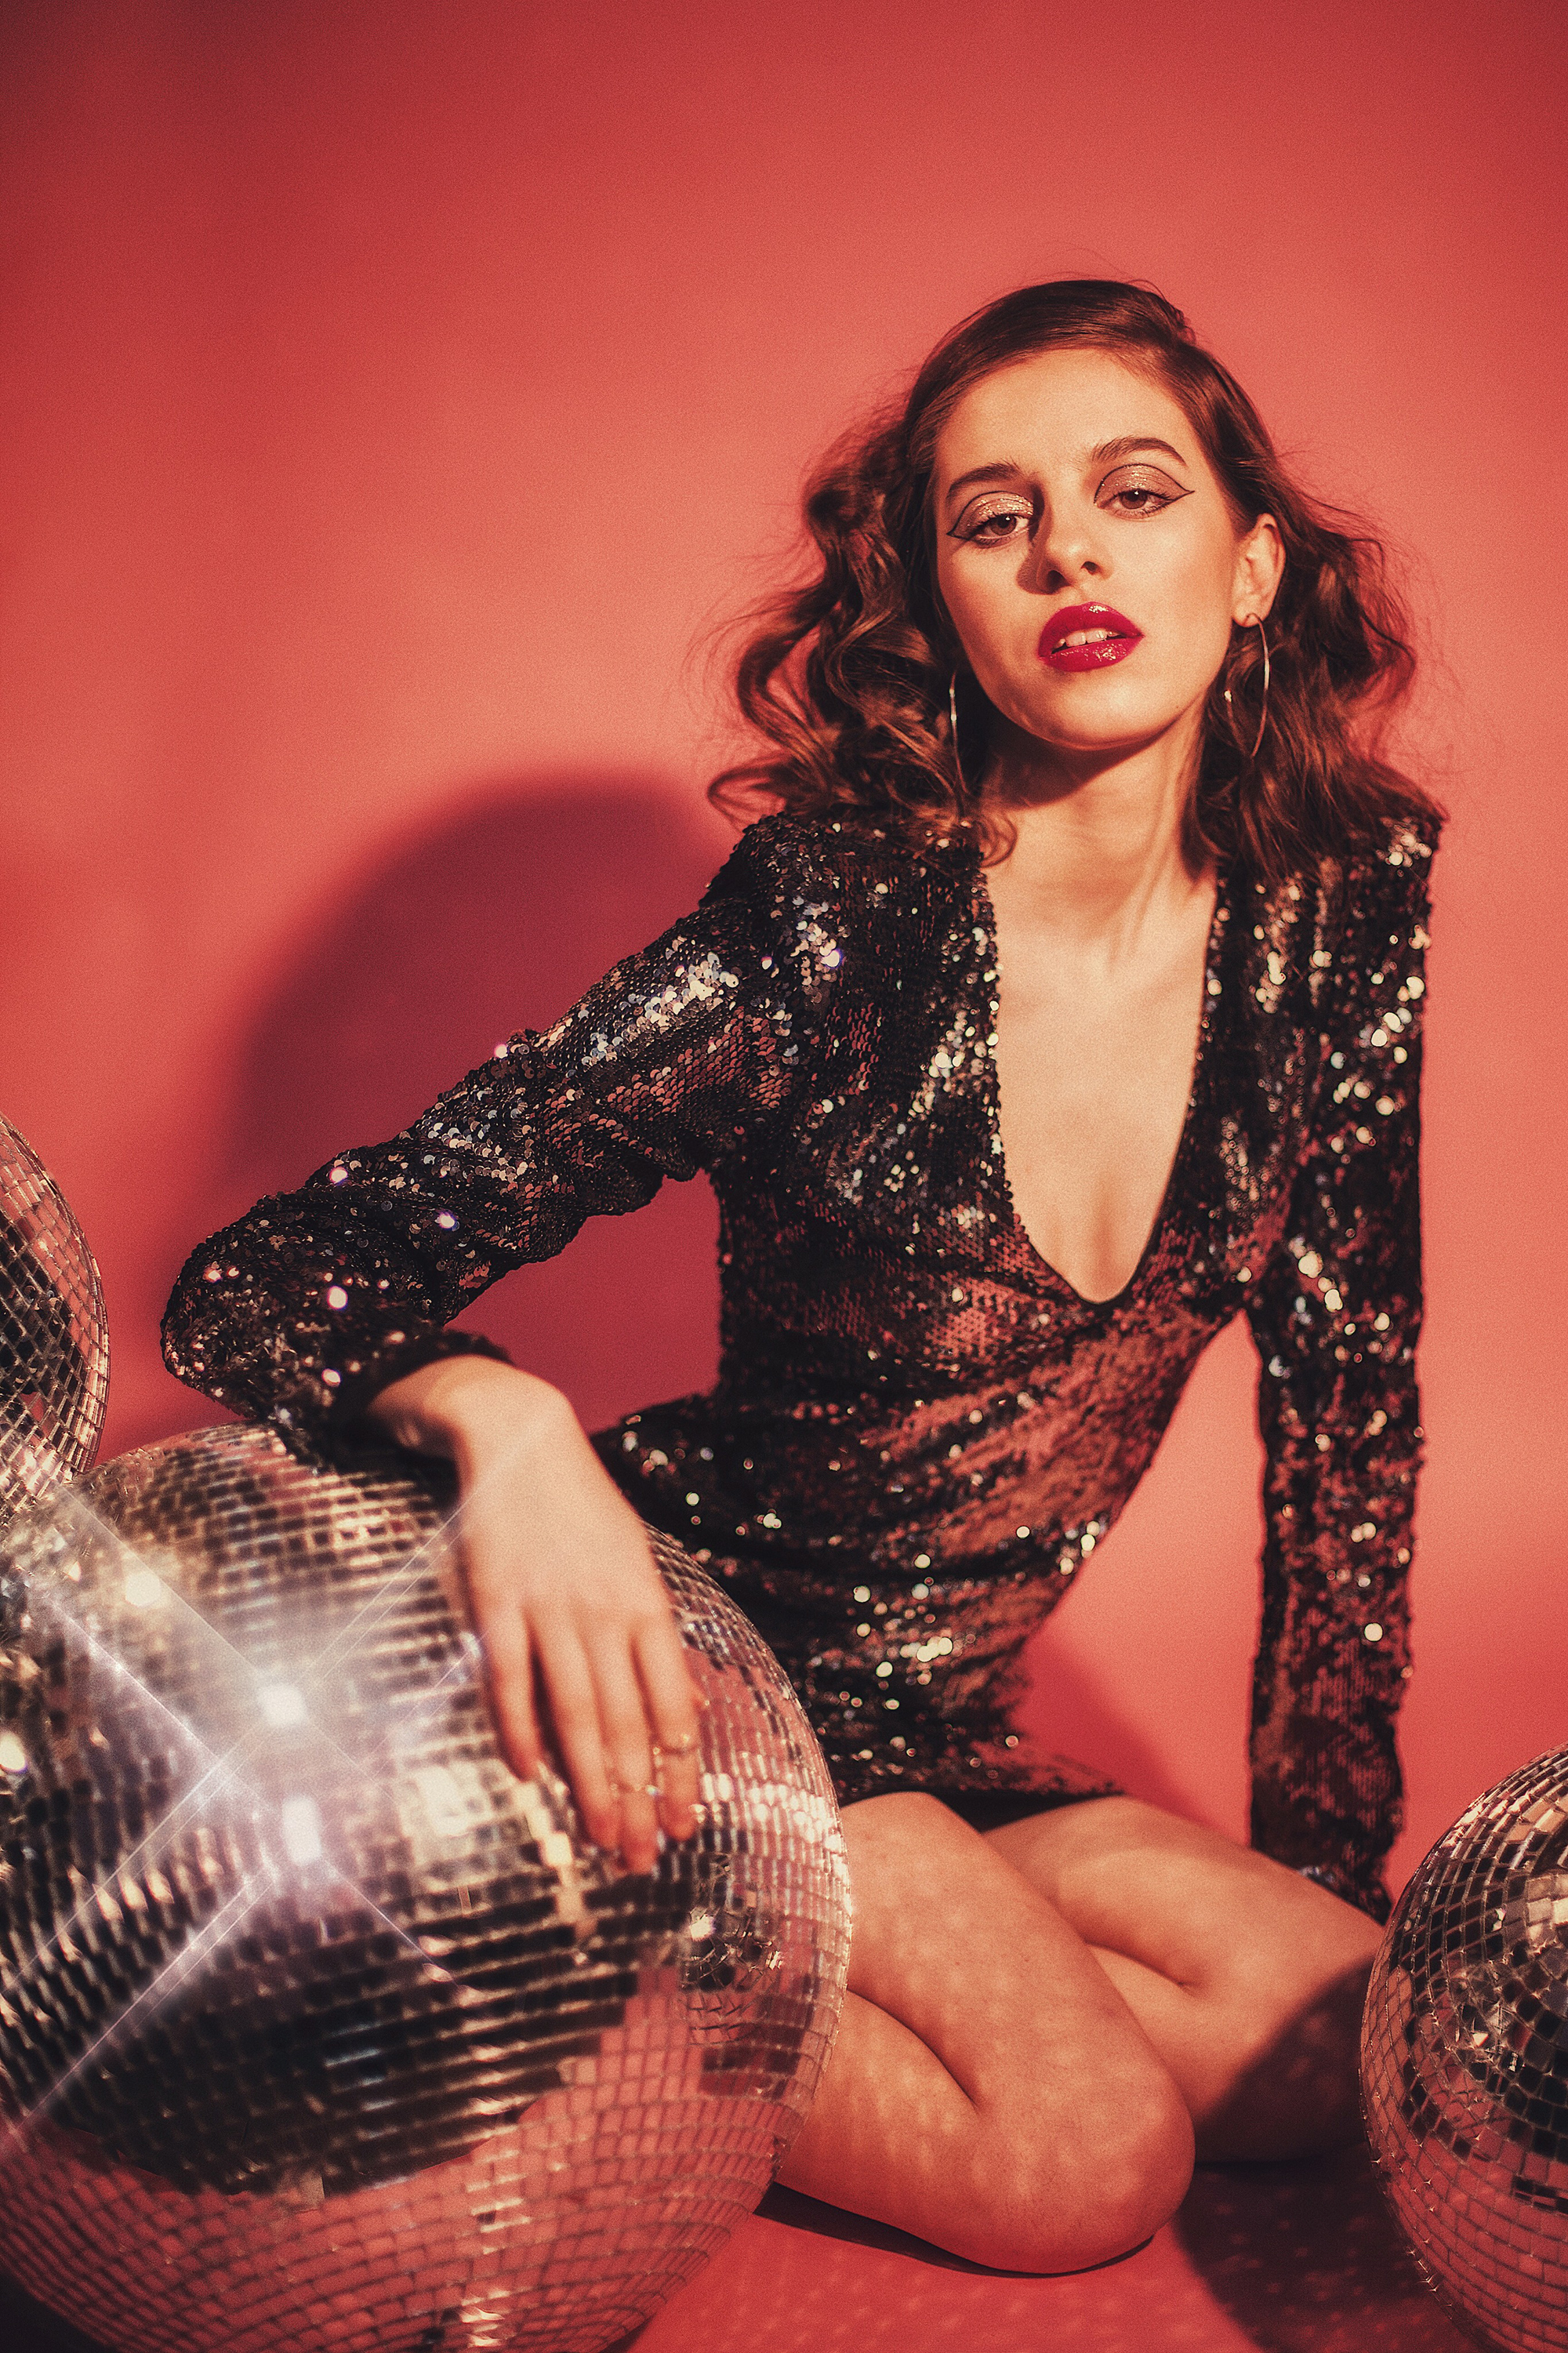 Hot Stuff - Editorial by Anastasia Asty